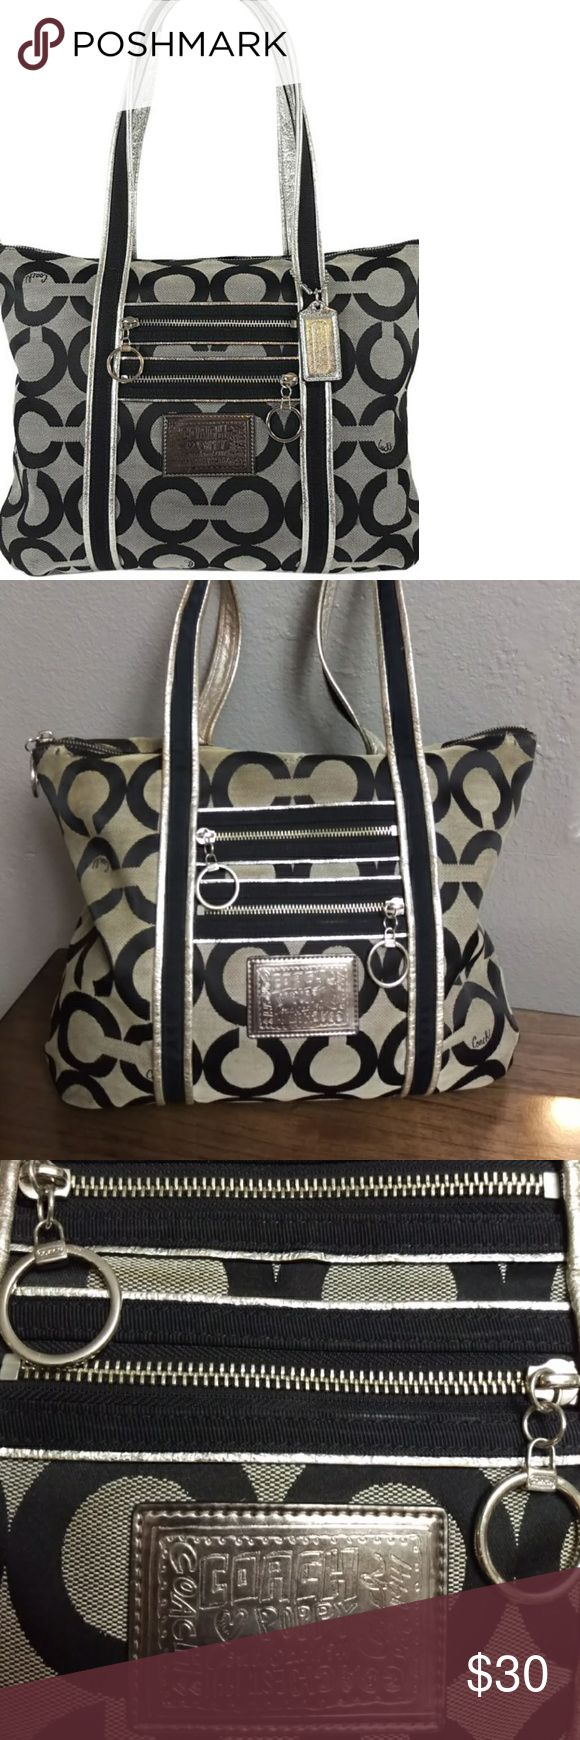 """Coach Poppy Duffle Large Tote Coach Poppy Duffle Large Tote black and gray exterior with purple interior, large zipper compartment, 2 smaller compartments, 2 zipper exterior pockets, size 16""""x14""""x4""""- has a lot of wear and scarfs on top(see pictures for details). But still has plenty life in it. Asis Coach Bags Totes"""